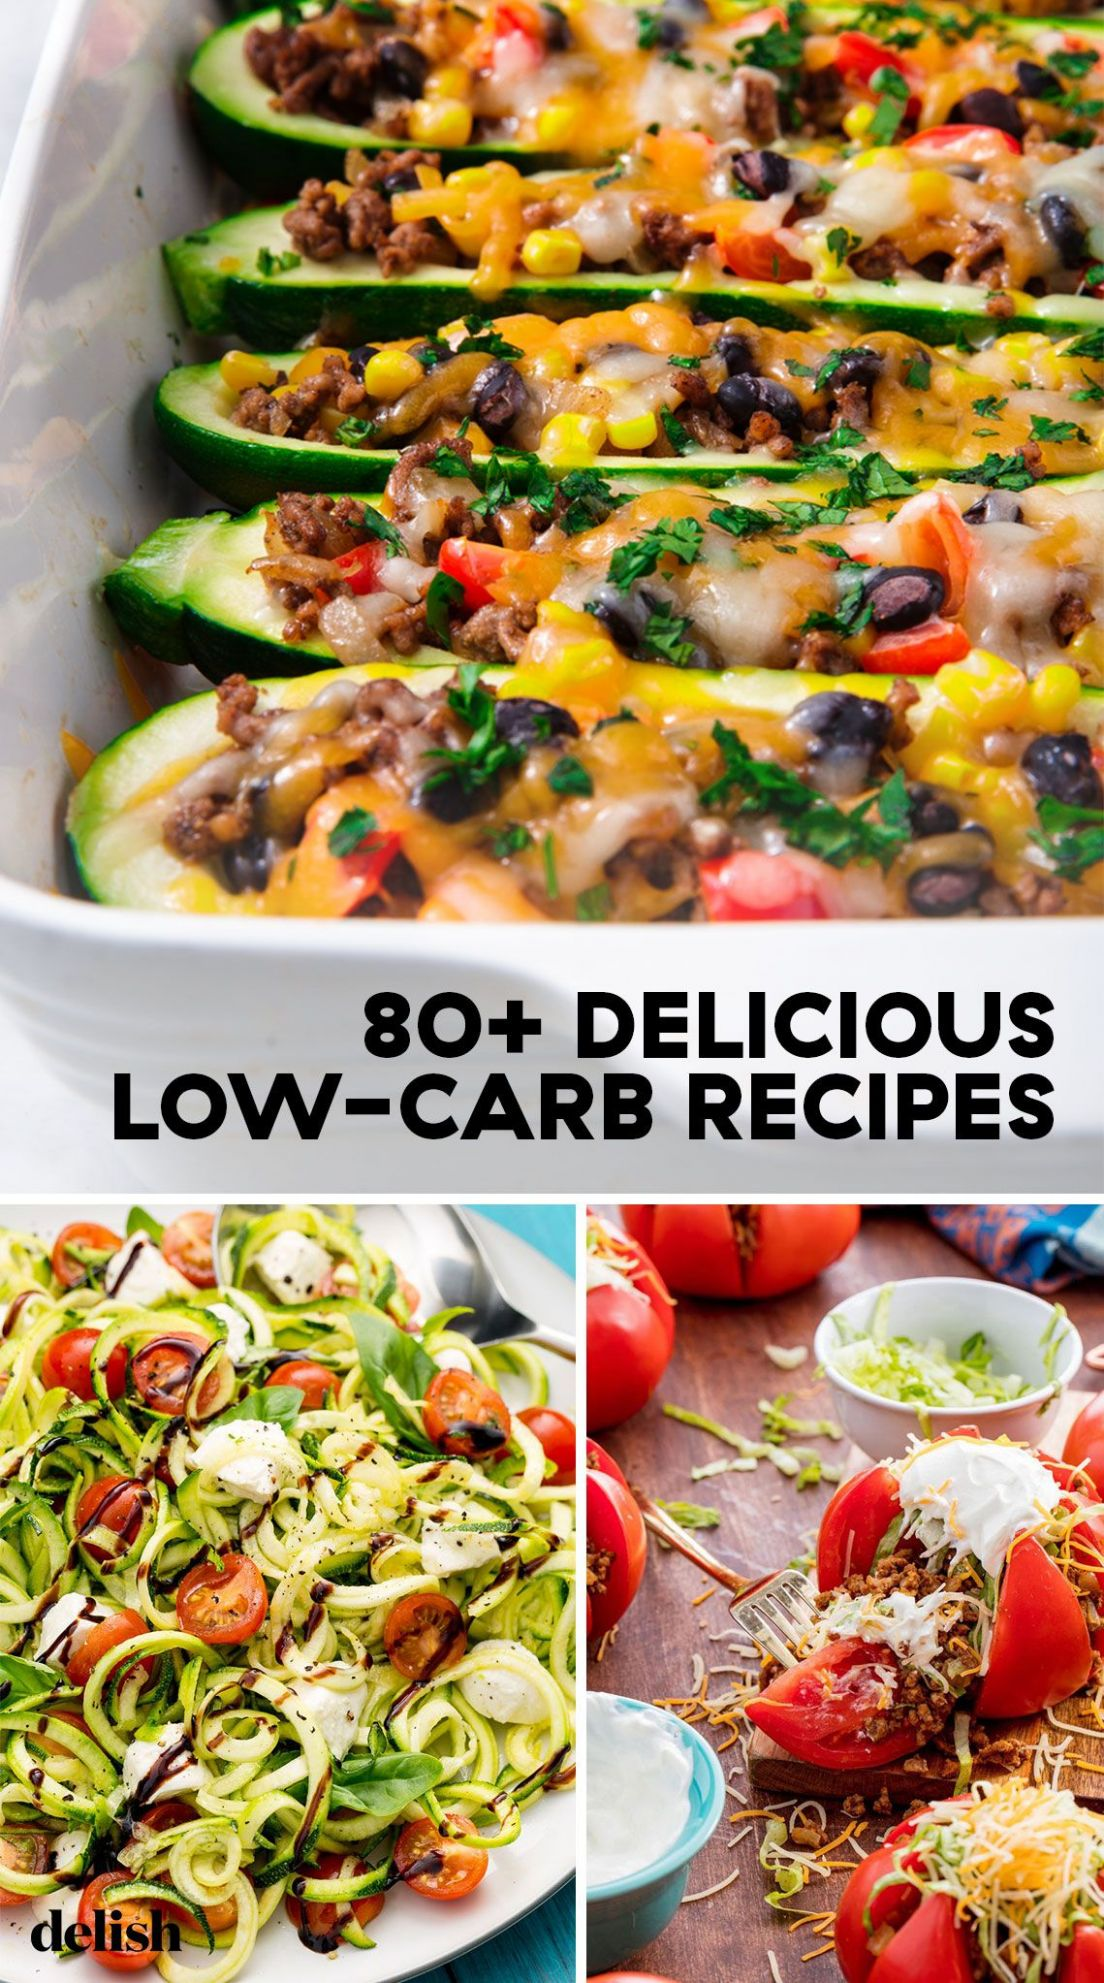 11+ Easy Low Carb Recipes - Best Low Carb Meal Ideas - Easy Recipes No Carbs